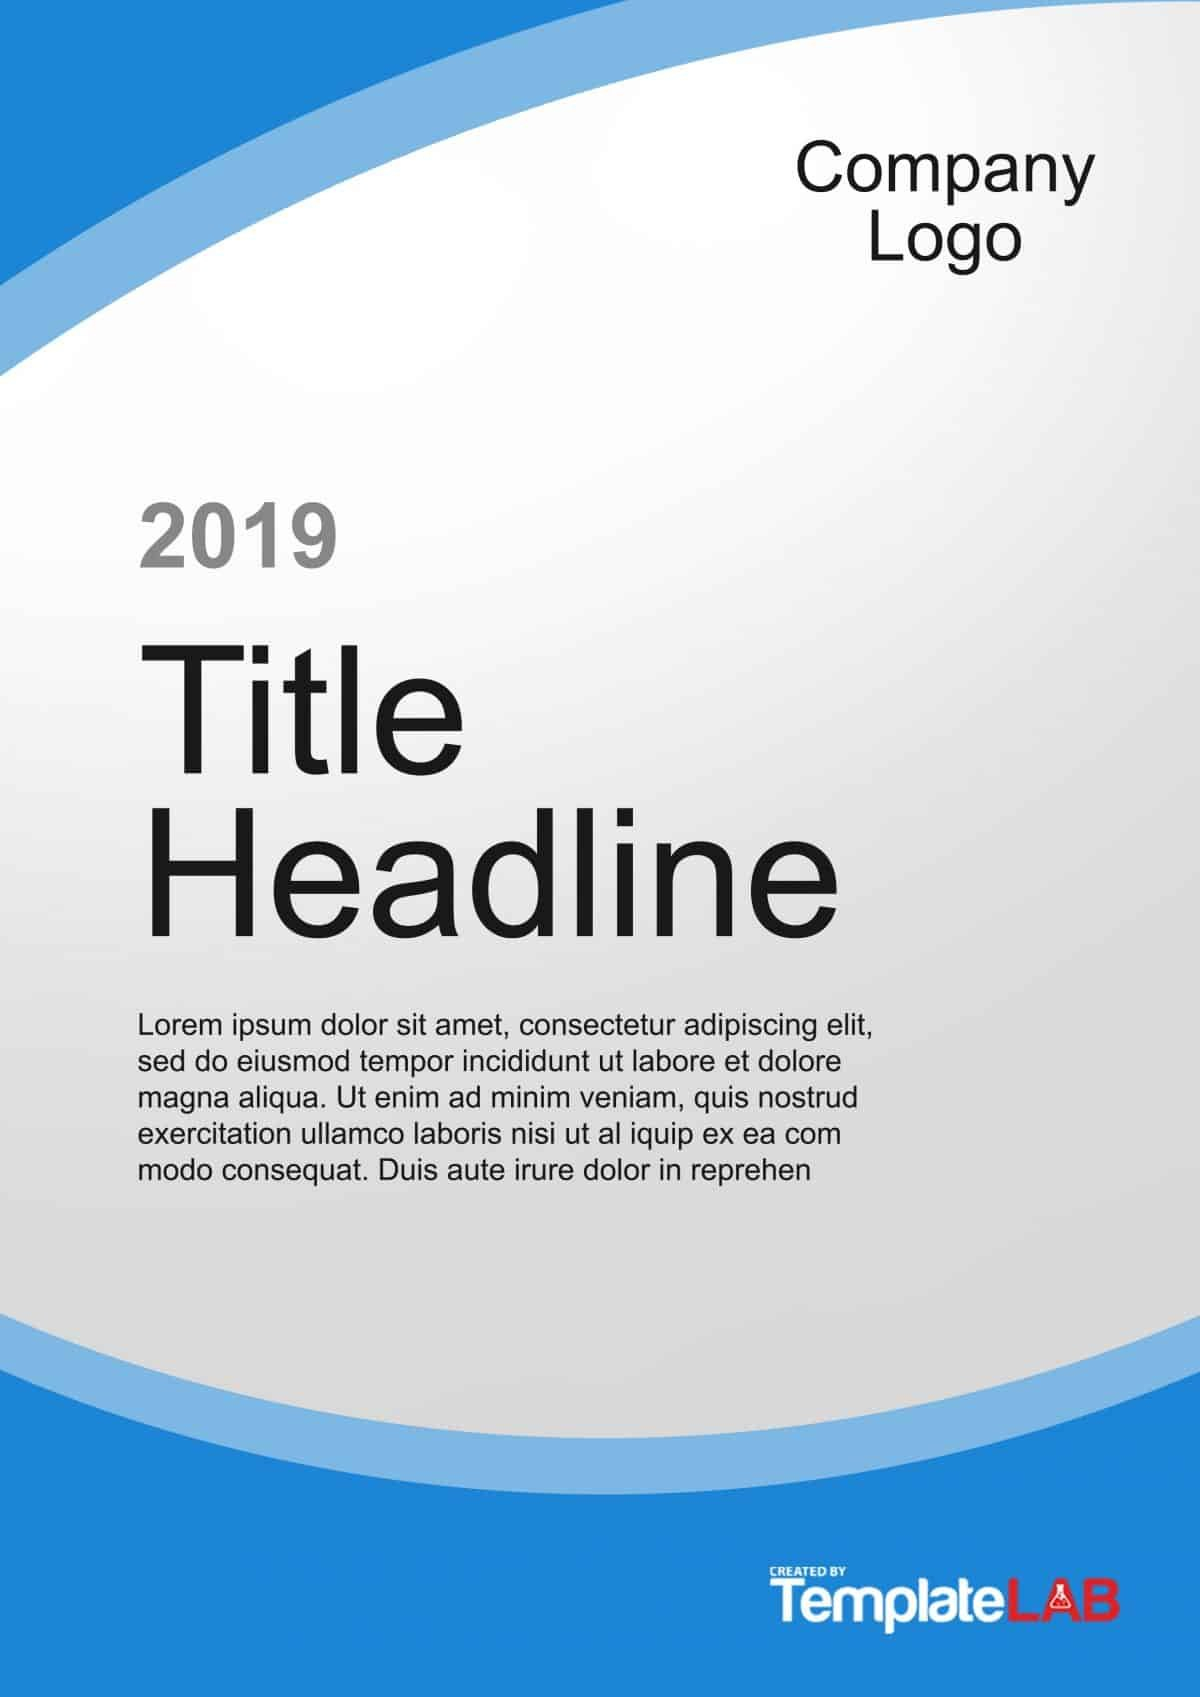 Amazing Cover Page Templates Word  Psd ᐅ Template Lab With Proposal Cover Page Template